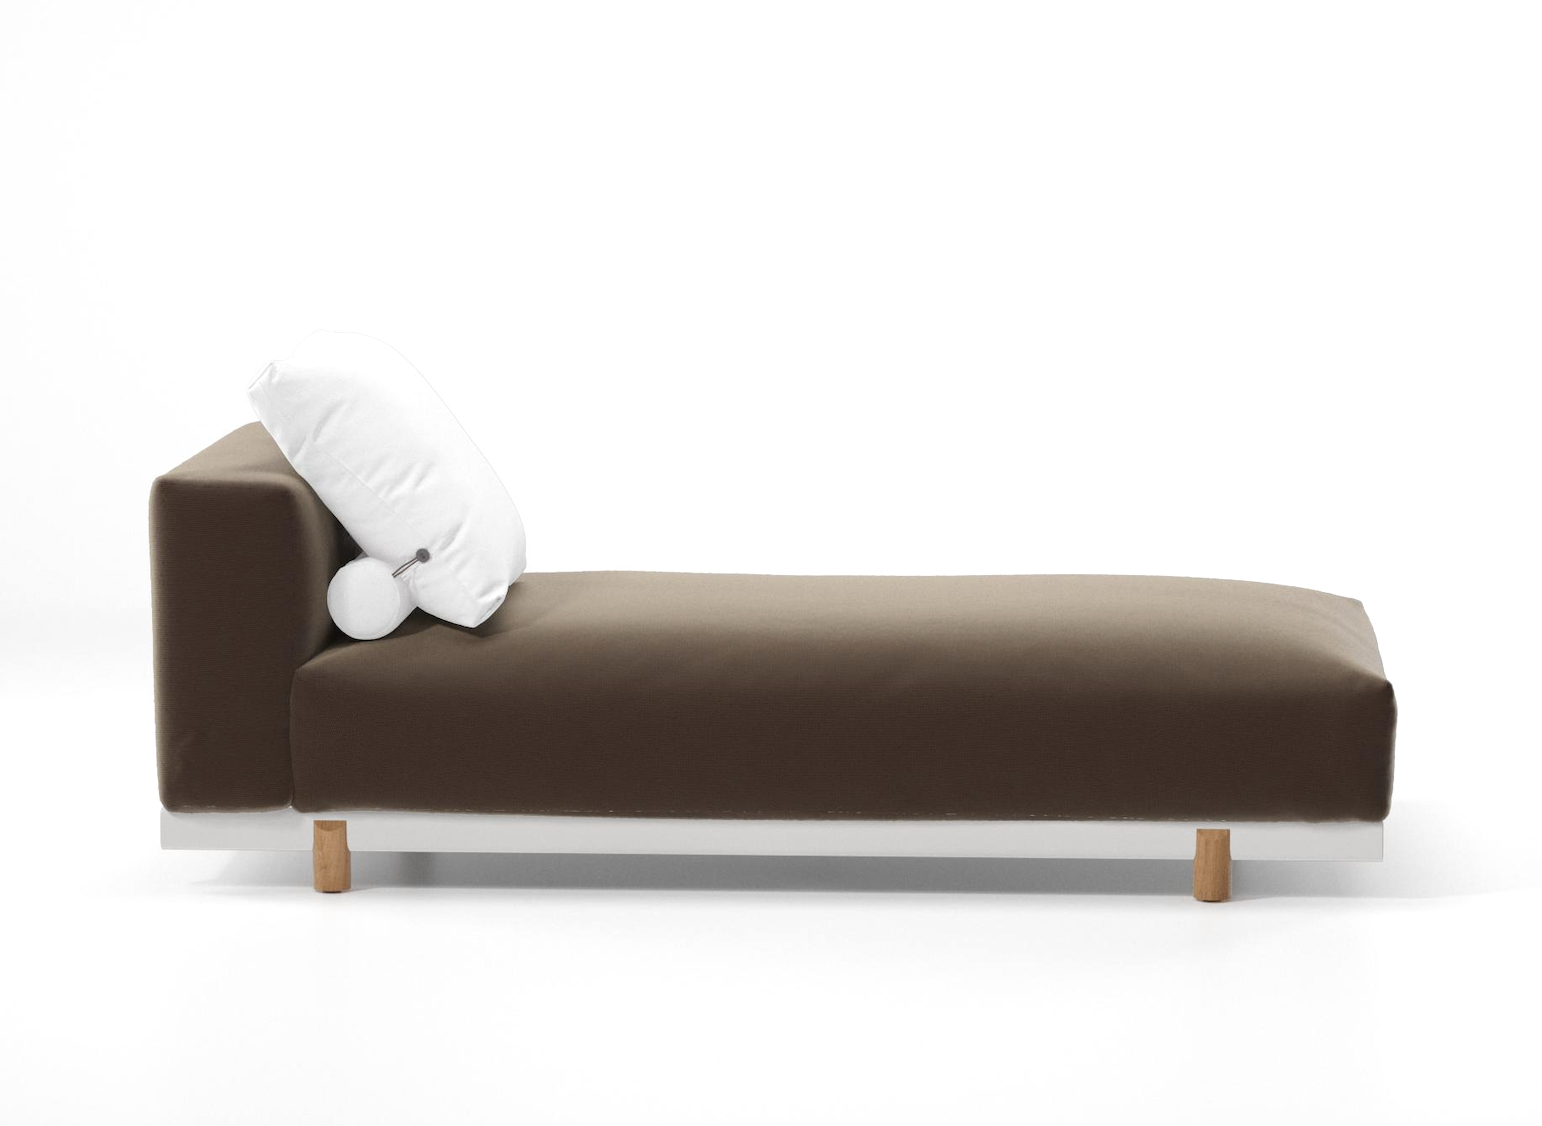 Product Image Molo Chaise Lounge